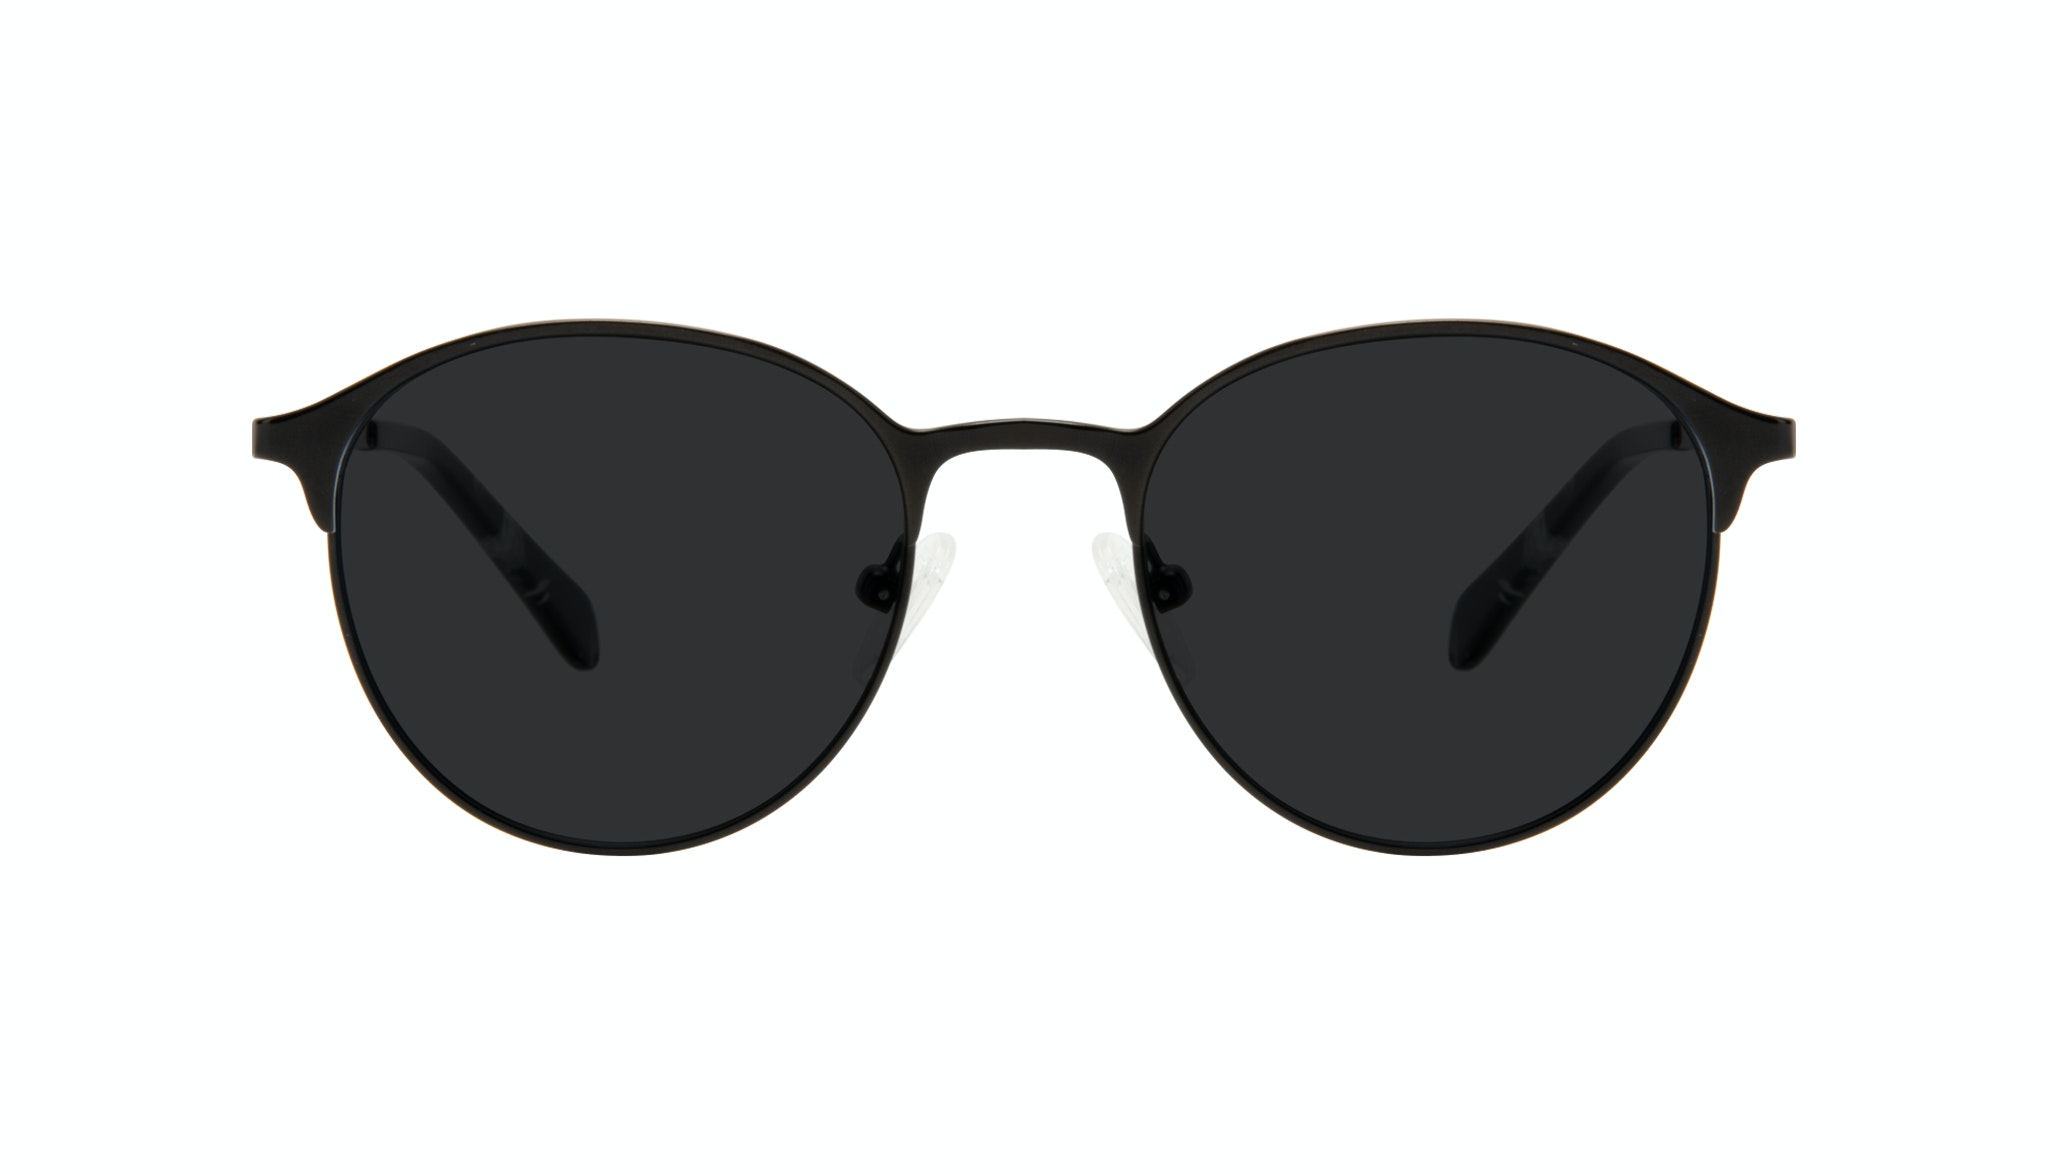 Affordable Fashion Glasses Round Sunglasses Women Bay II Black Matte